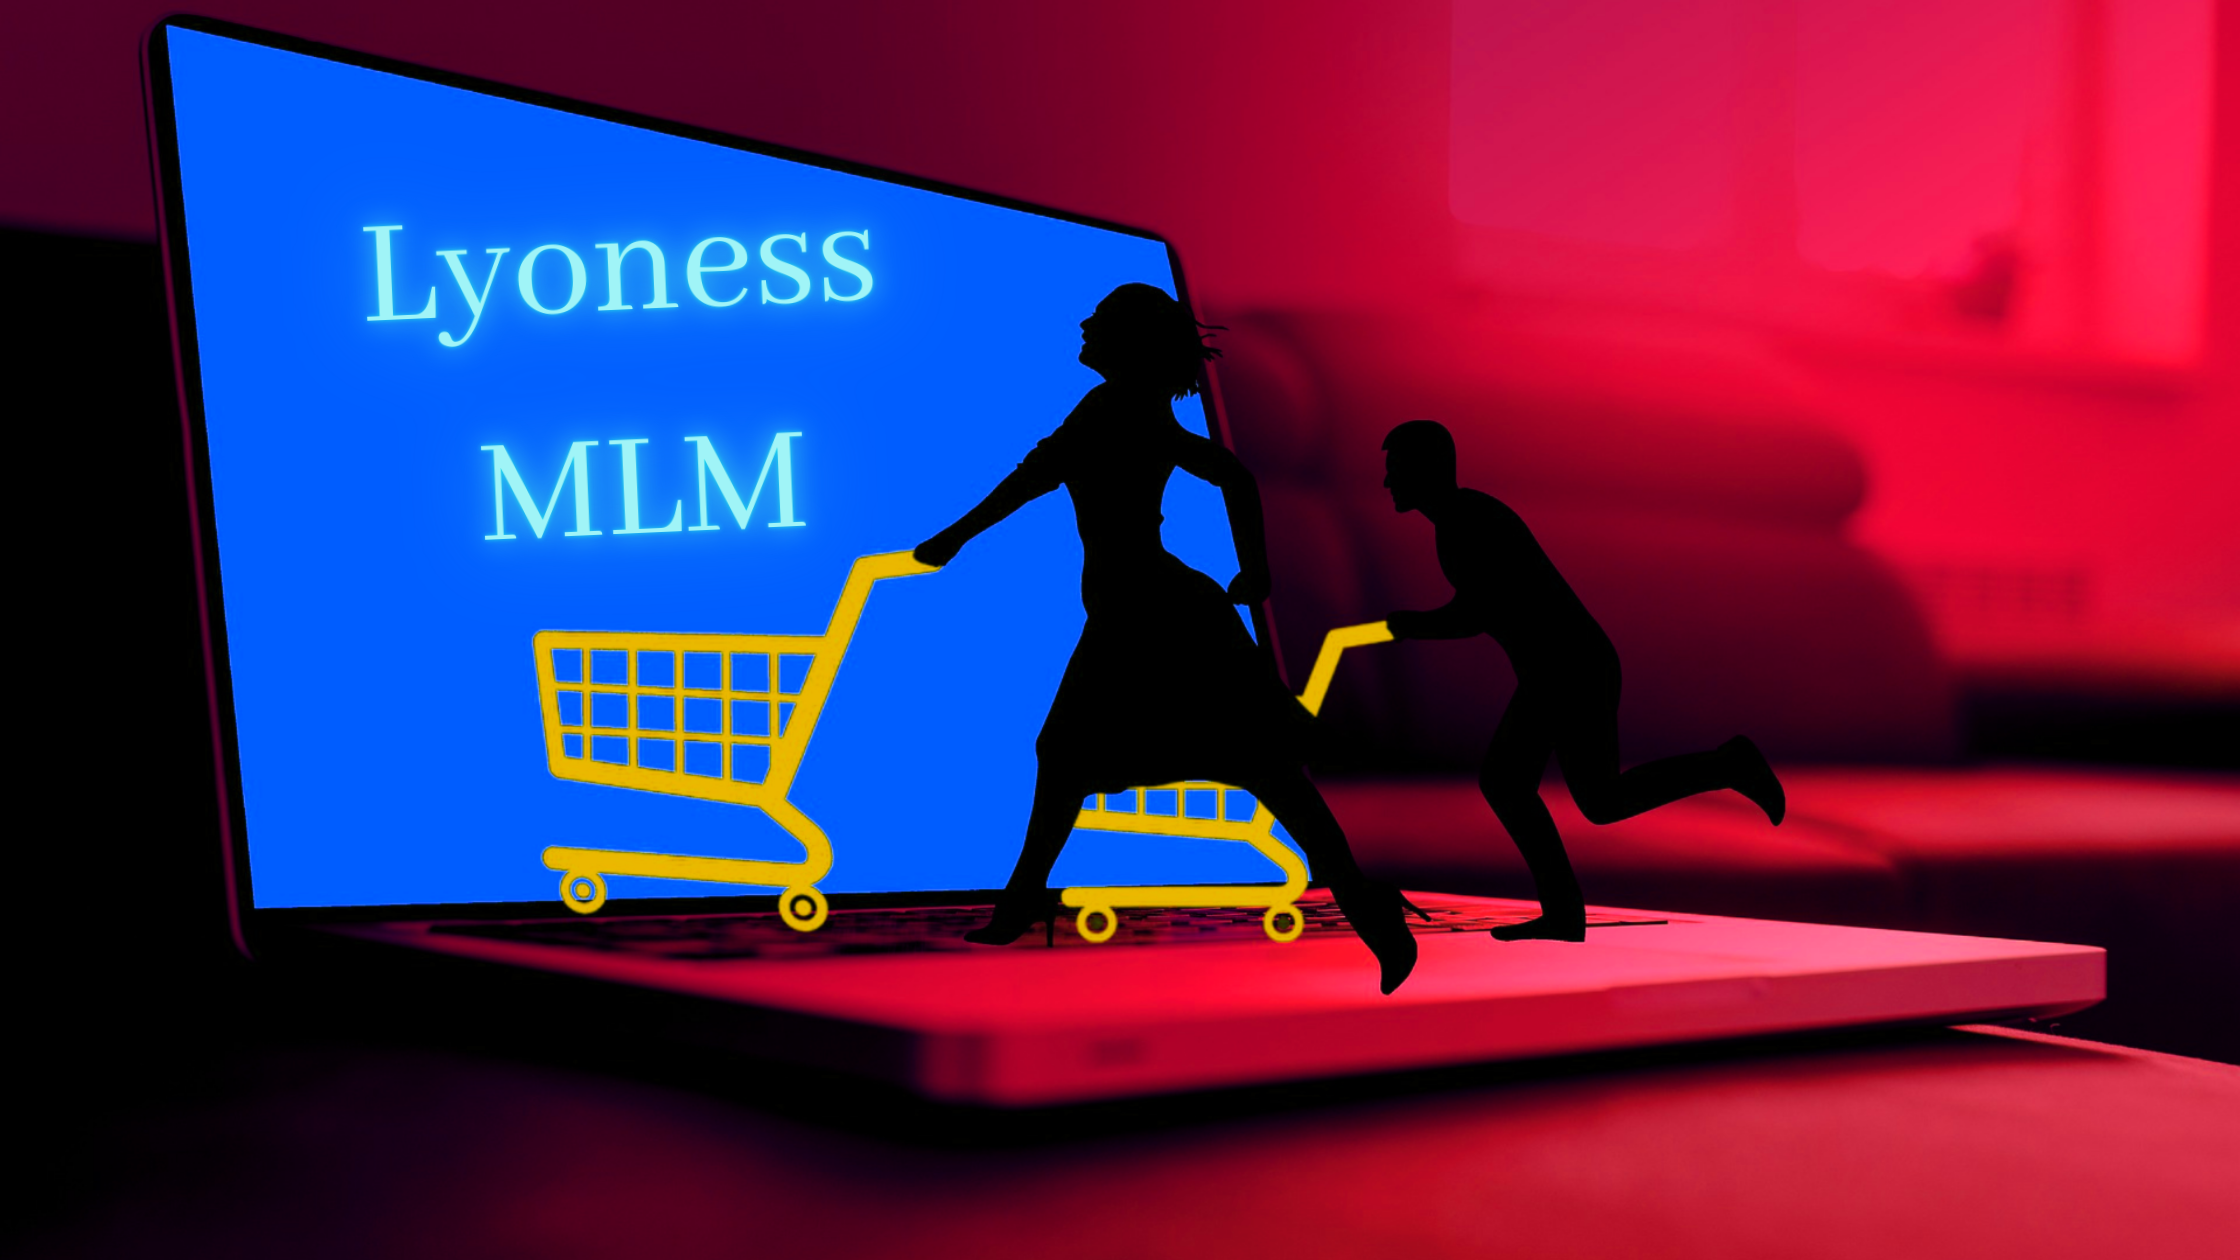 What is Lyoness MLM